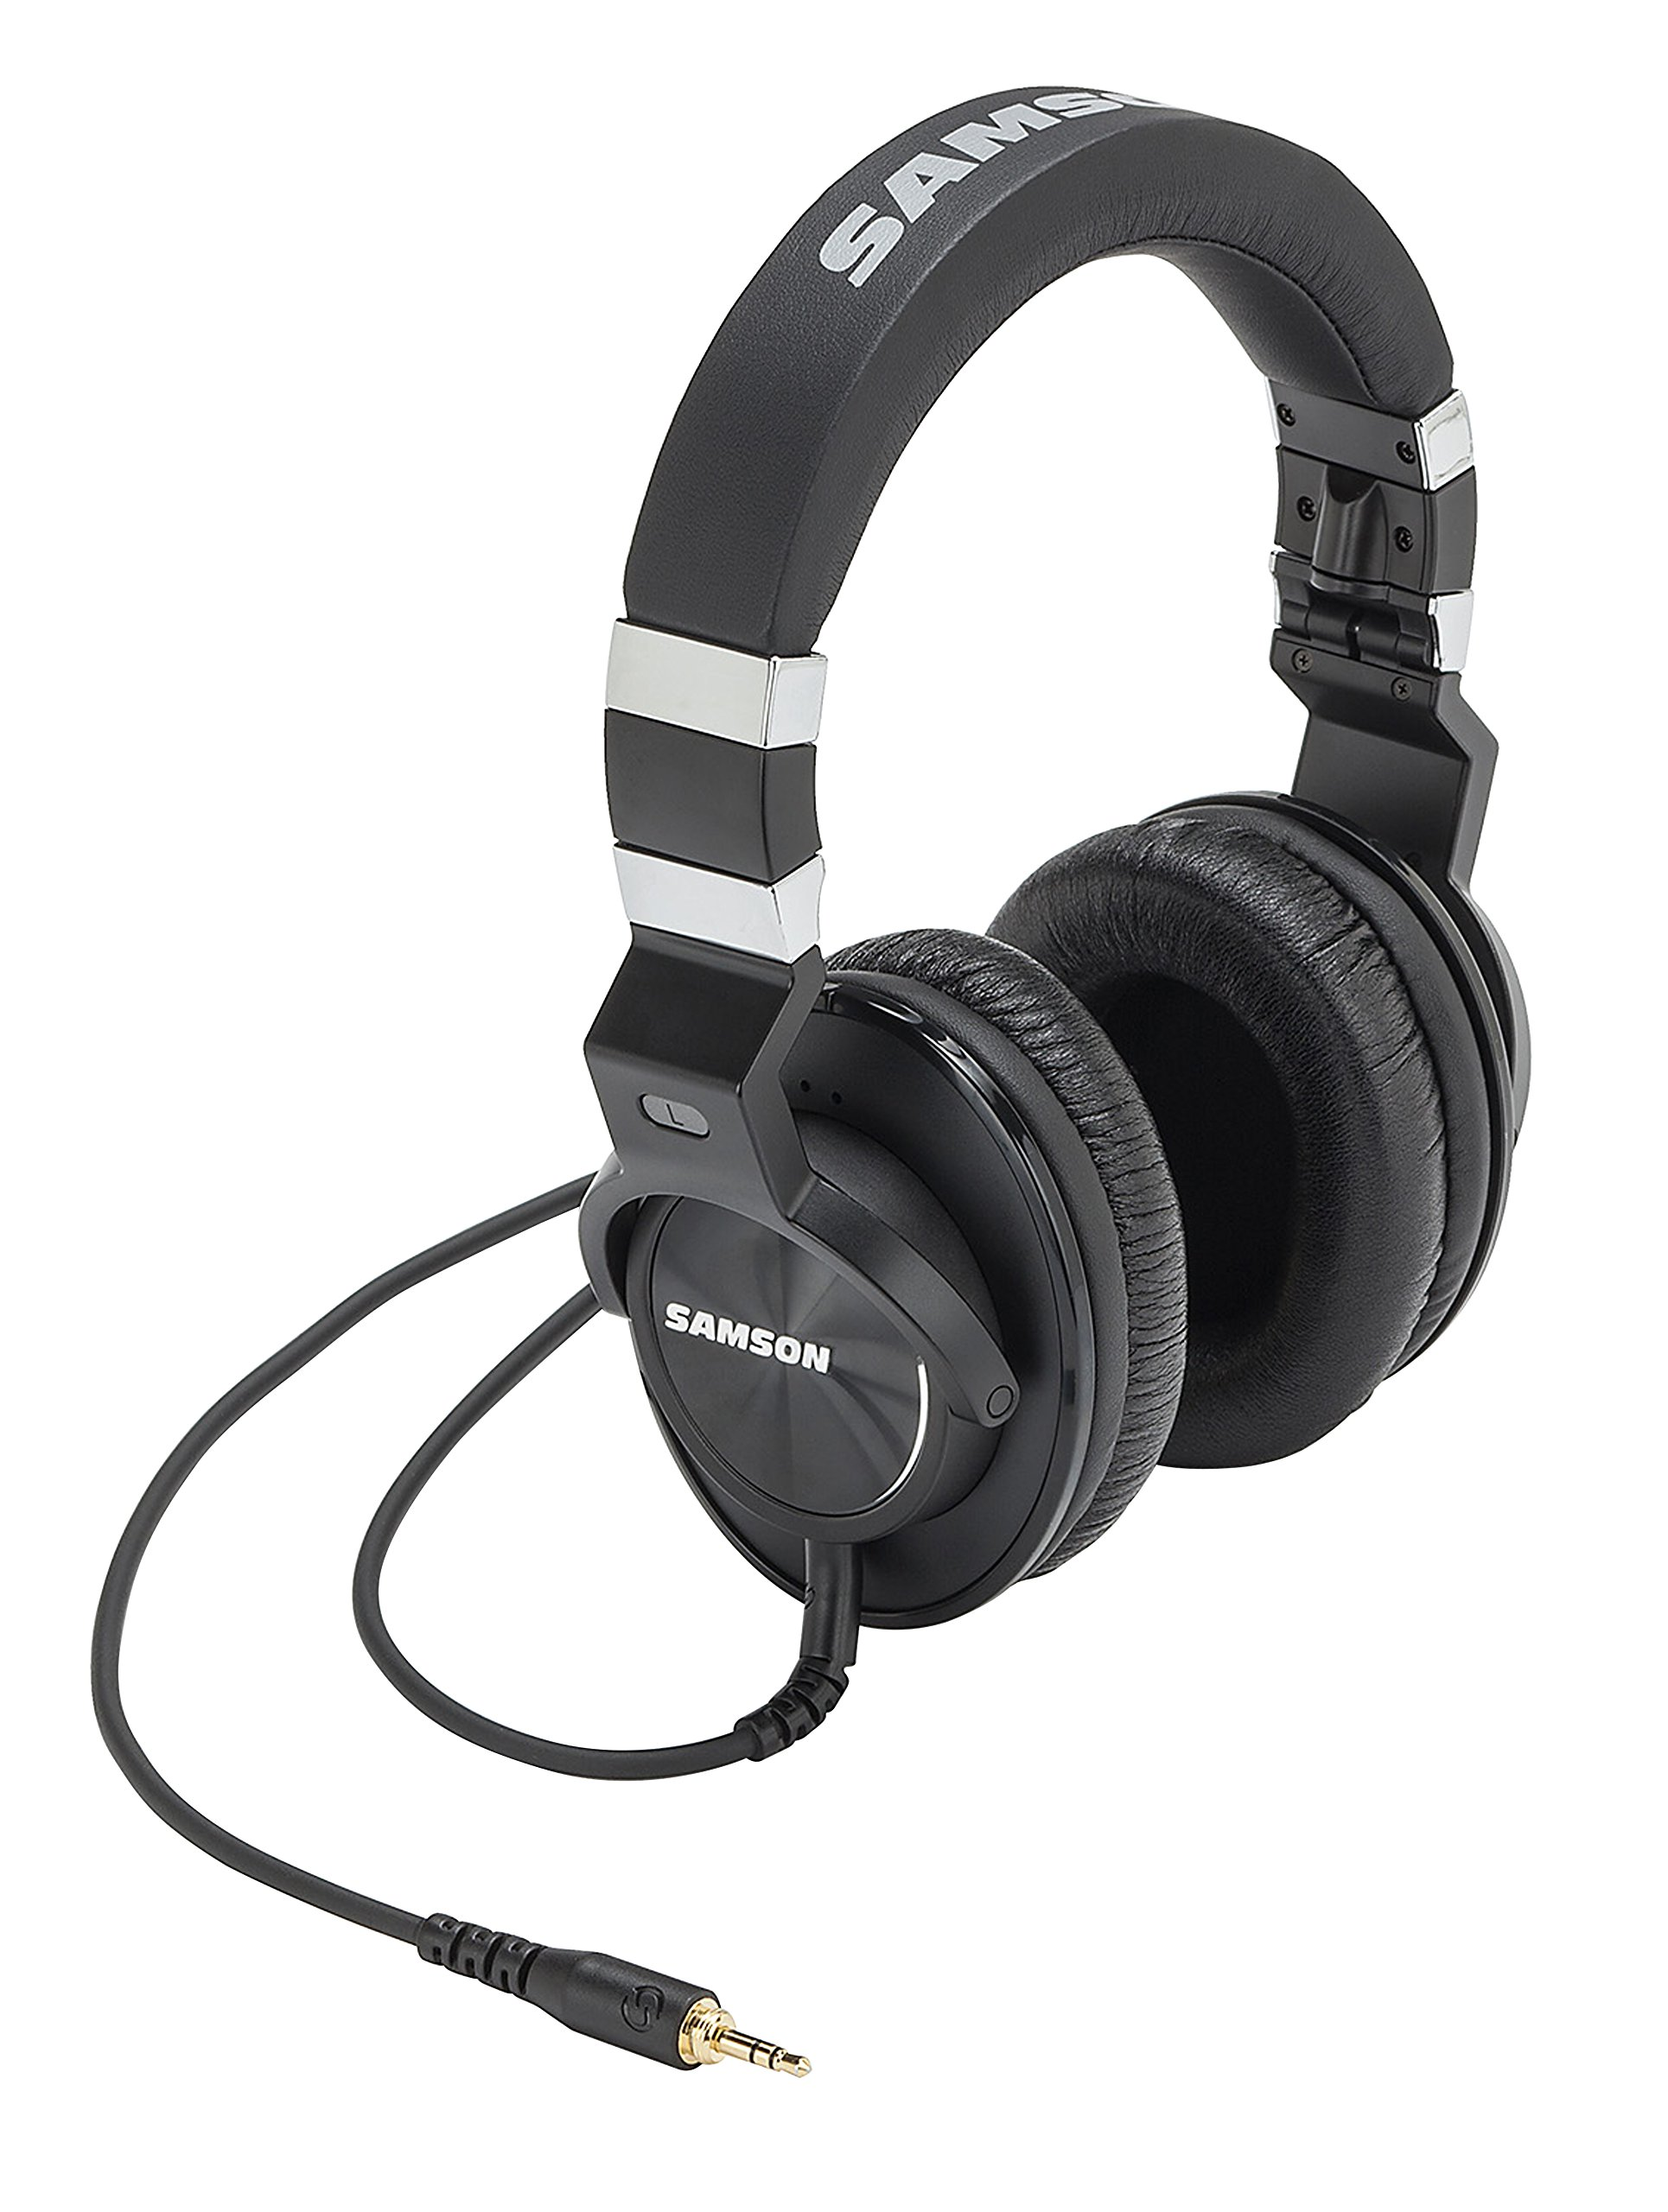 Samson Z55 Closed Back Over-Ear Professional Reference Headphones by Samson Technologies